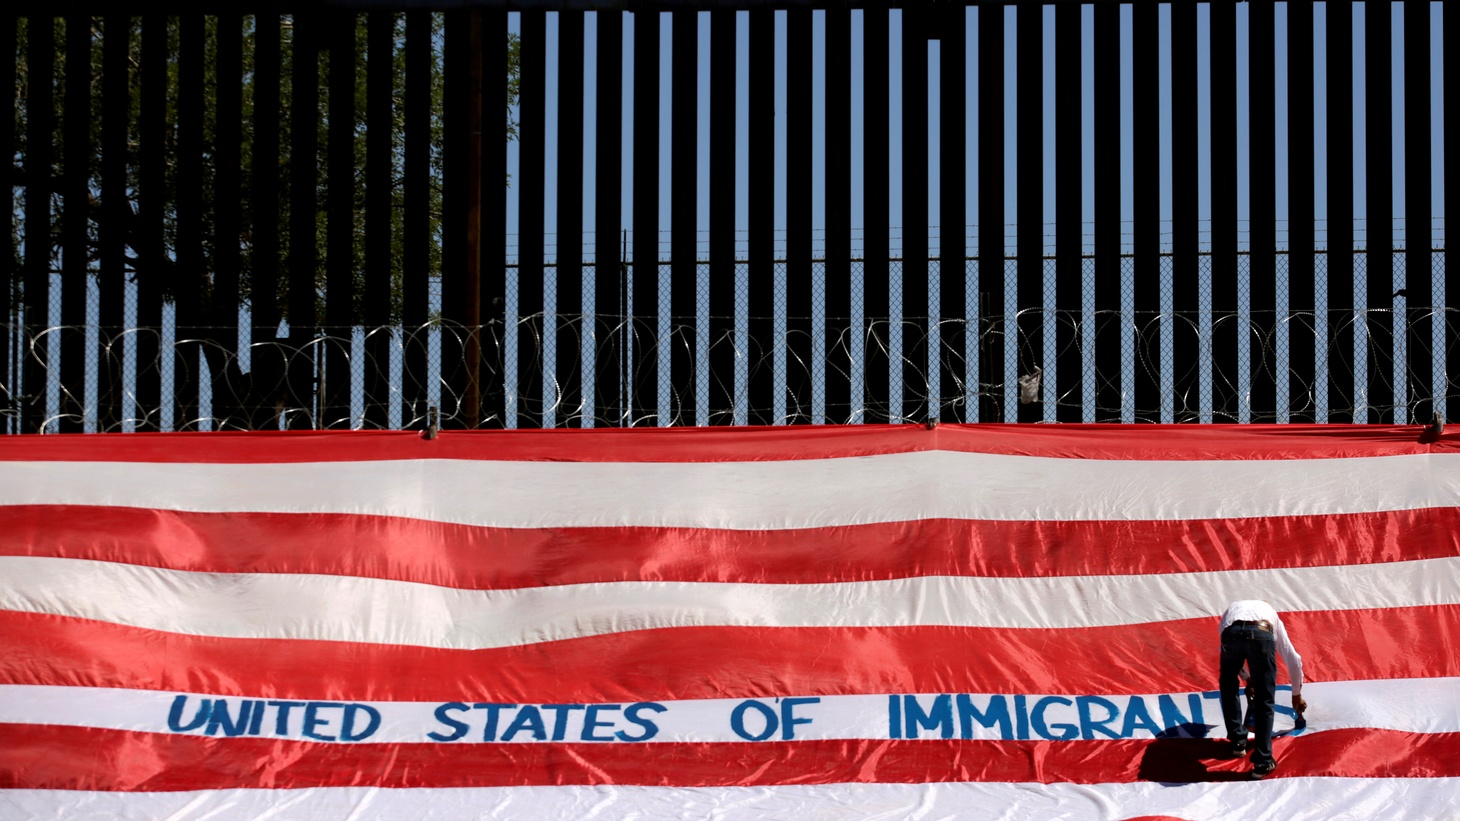 Roberto Marquez, known as Roberz, writes on a large U.S. flag as part of a protest called 'United States of Immigrants', aimed to demand respect for the migrants, near a border wall in El Paso, Texas, as pictured from Ciudad Juarez, Mexico June 6, 2019.